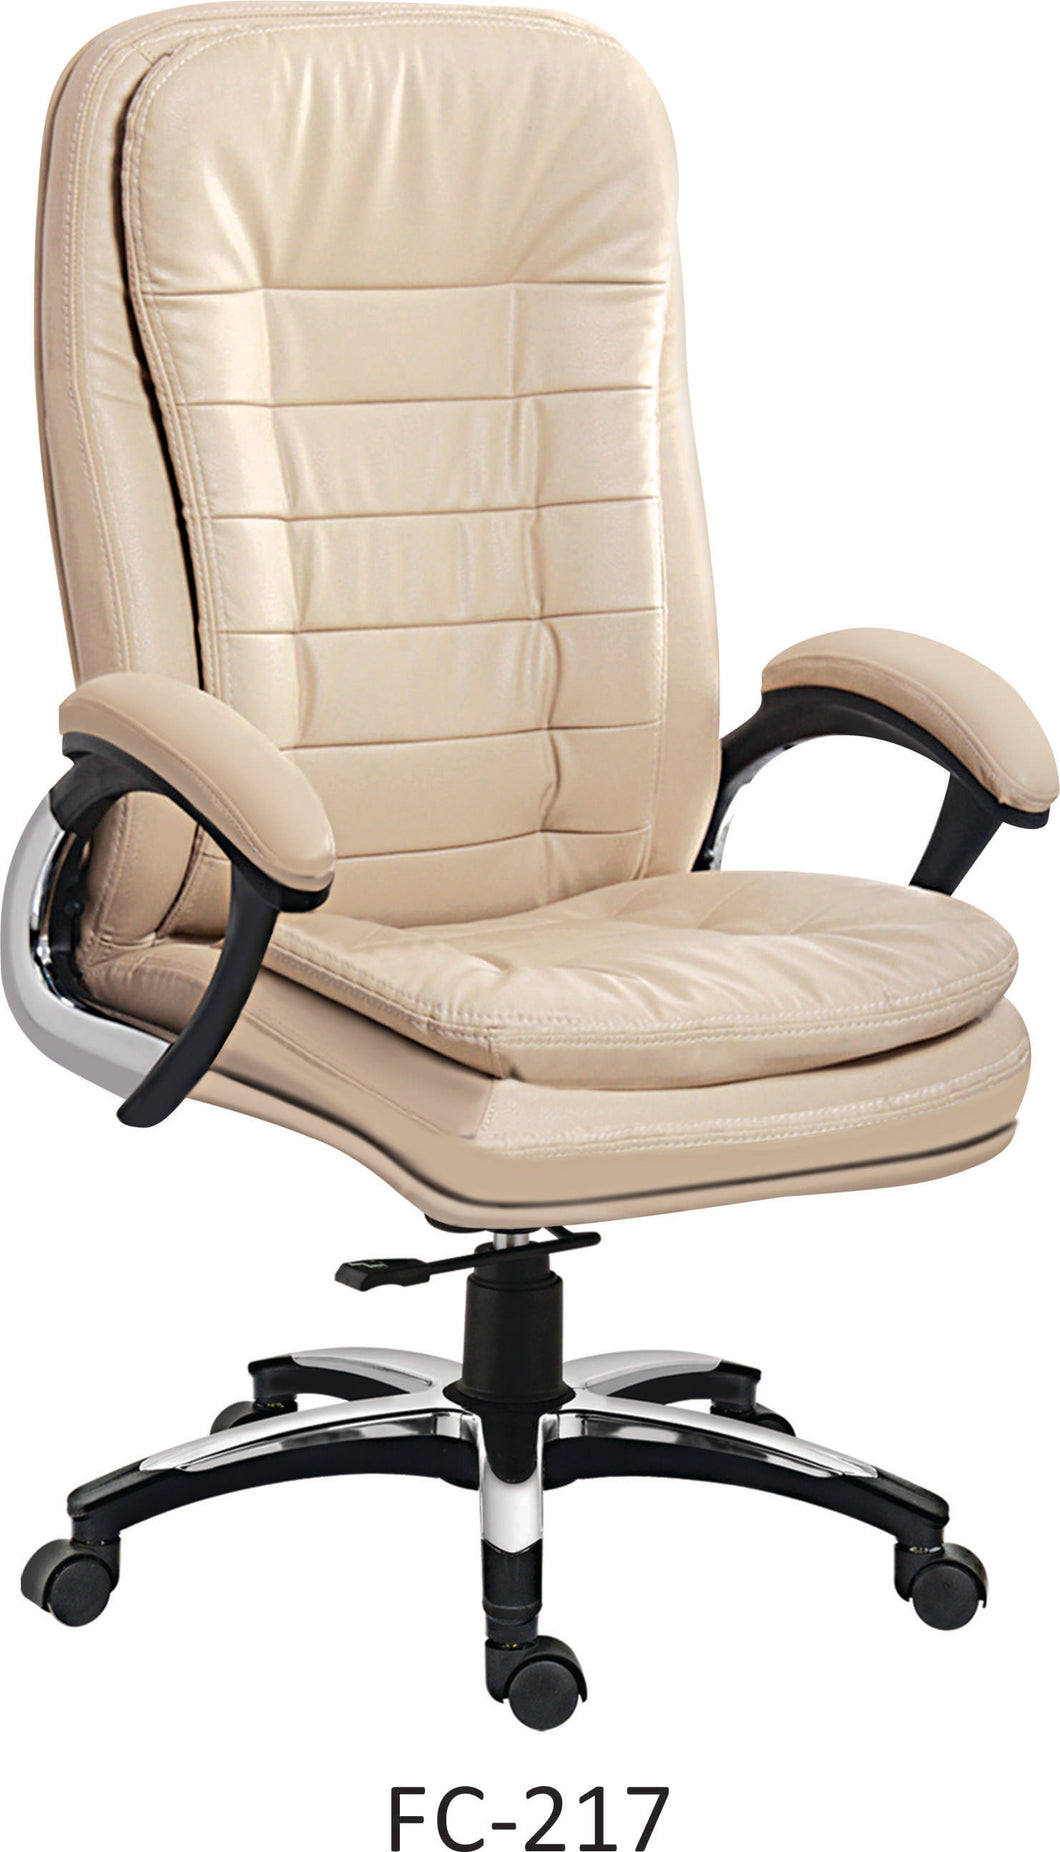 FC217- High Back Executive Chair